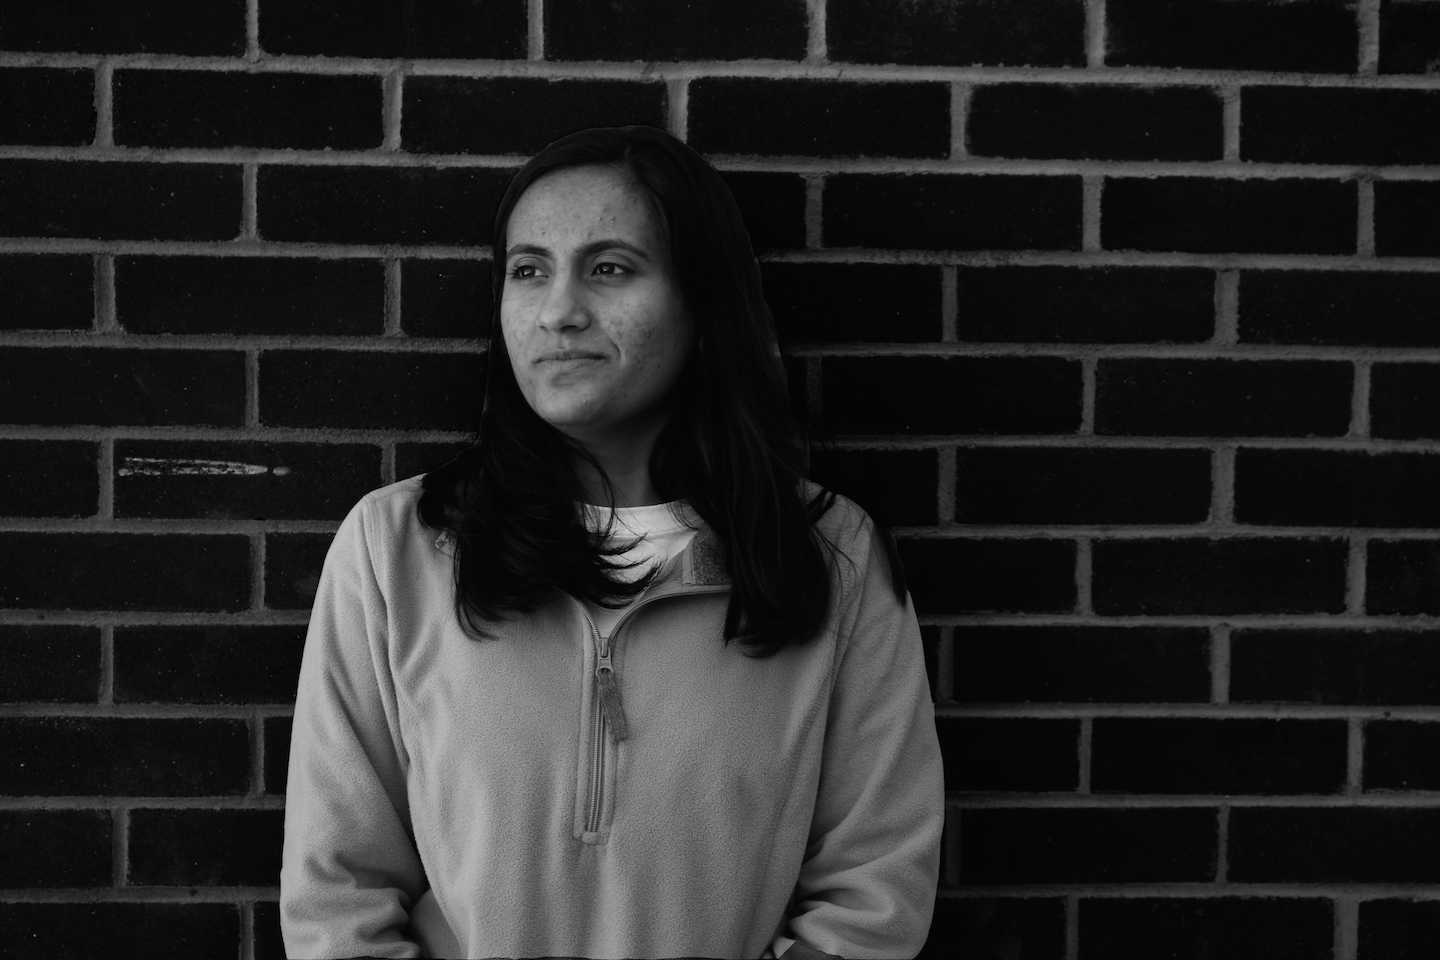 Senior Fatima Laraib, a native Pakistani, is from one of the countries targeted in